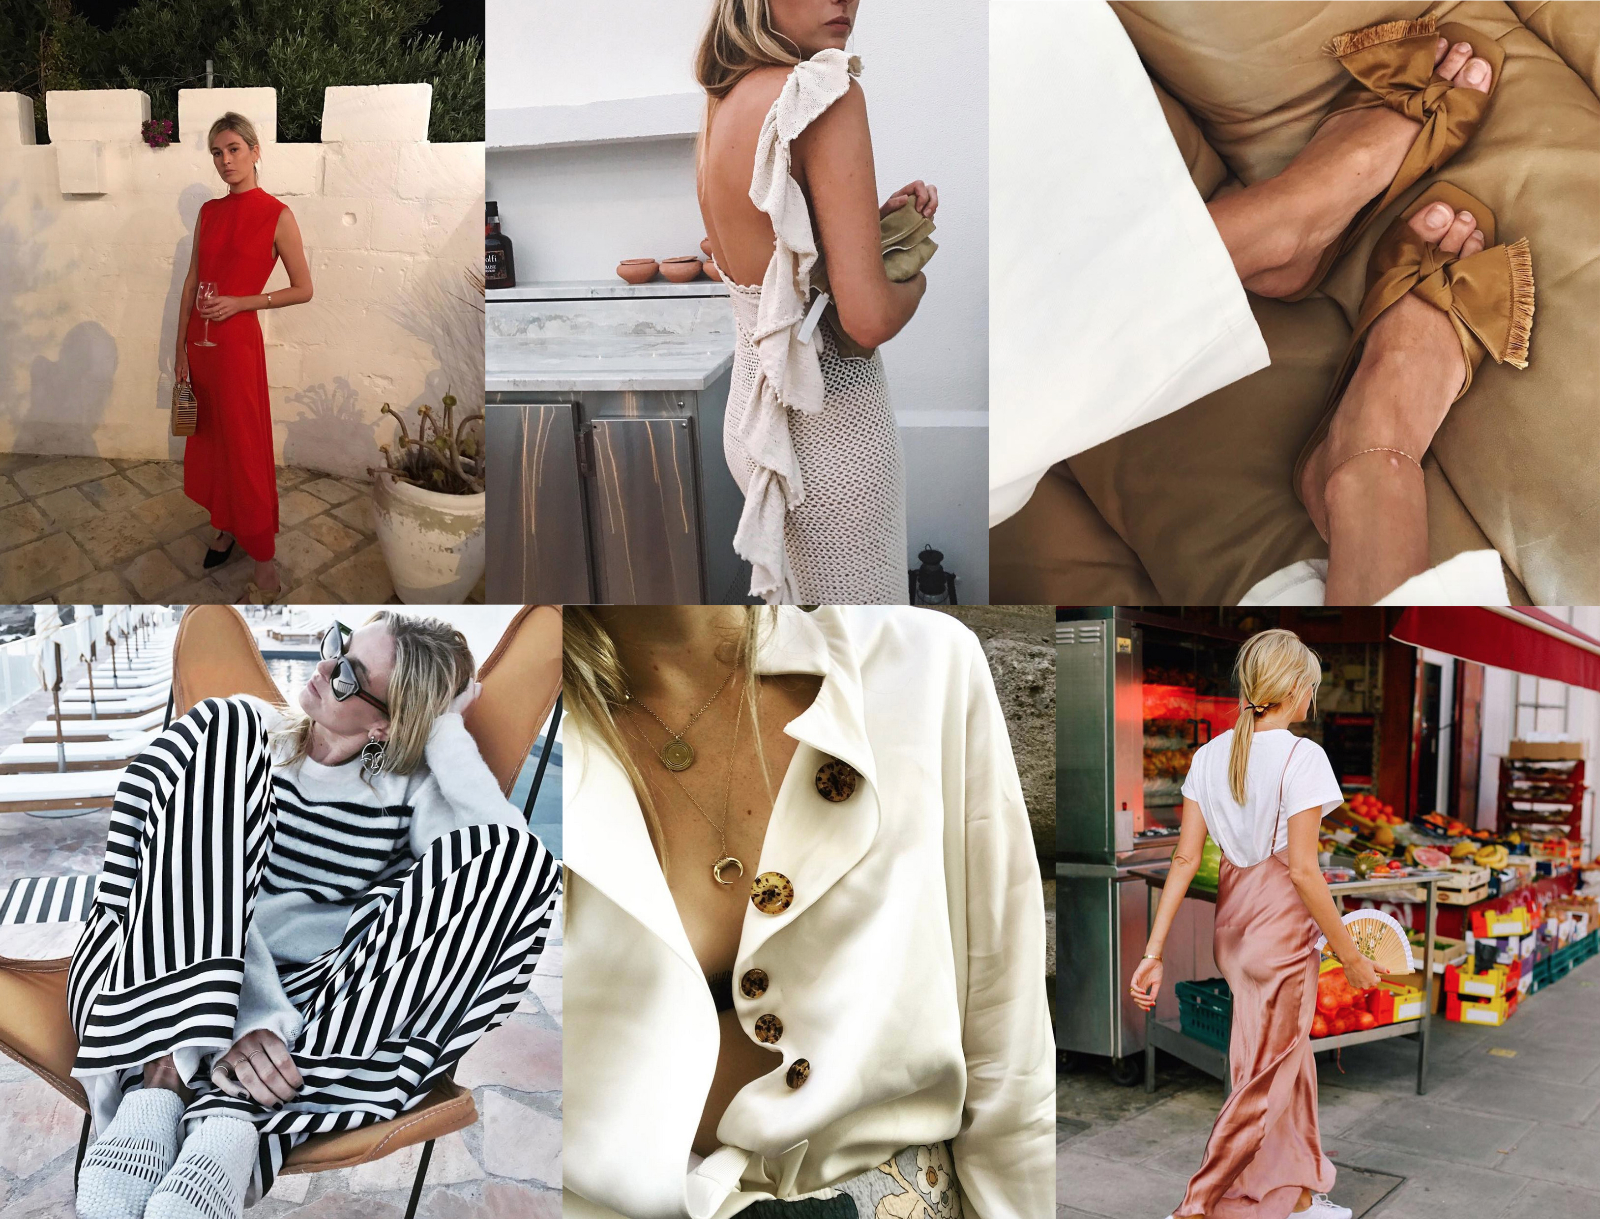 The-Limits-of-Control-Fashion-Fashionblogger-Blogger-Berlin-Deutschland-Modeblog-Who to Follow_Instagram